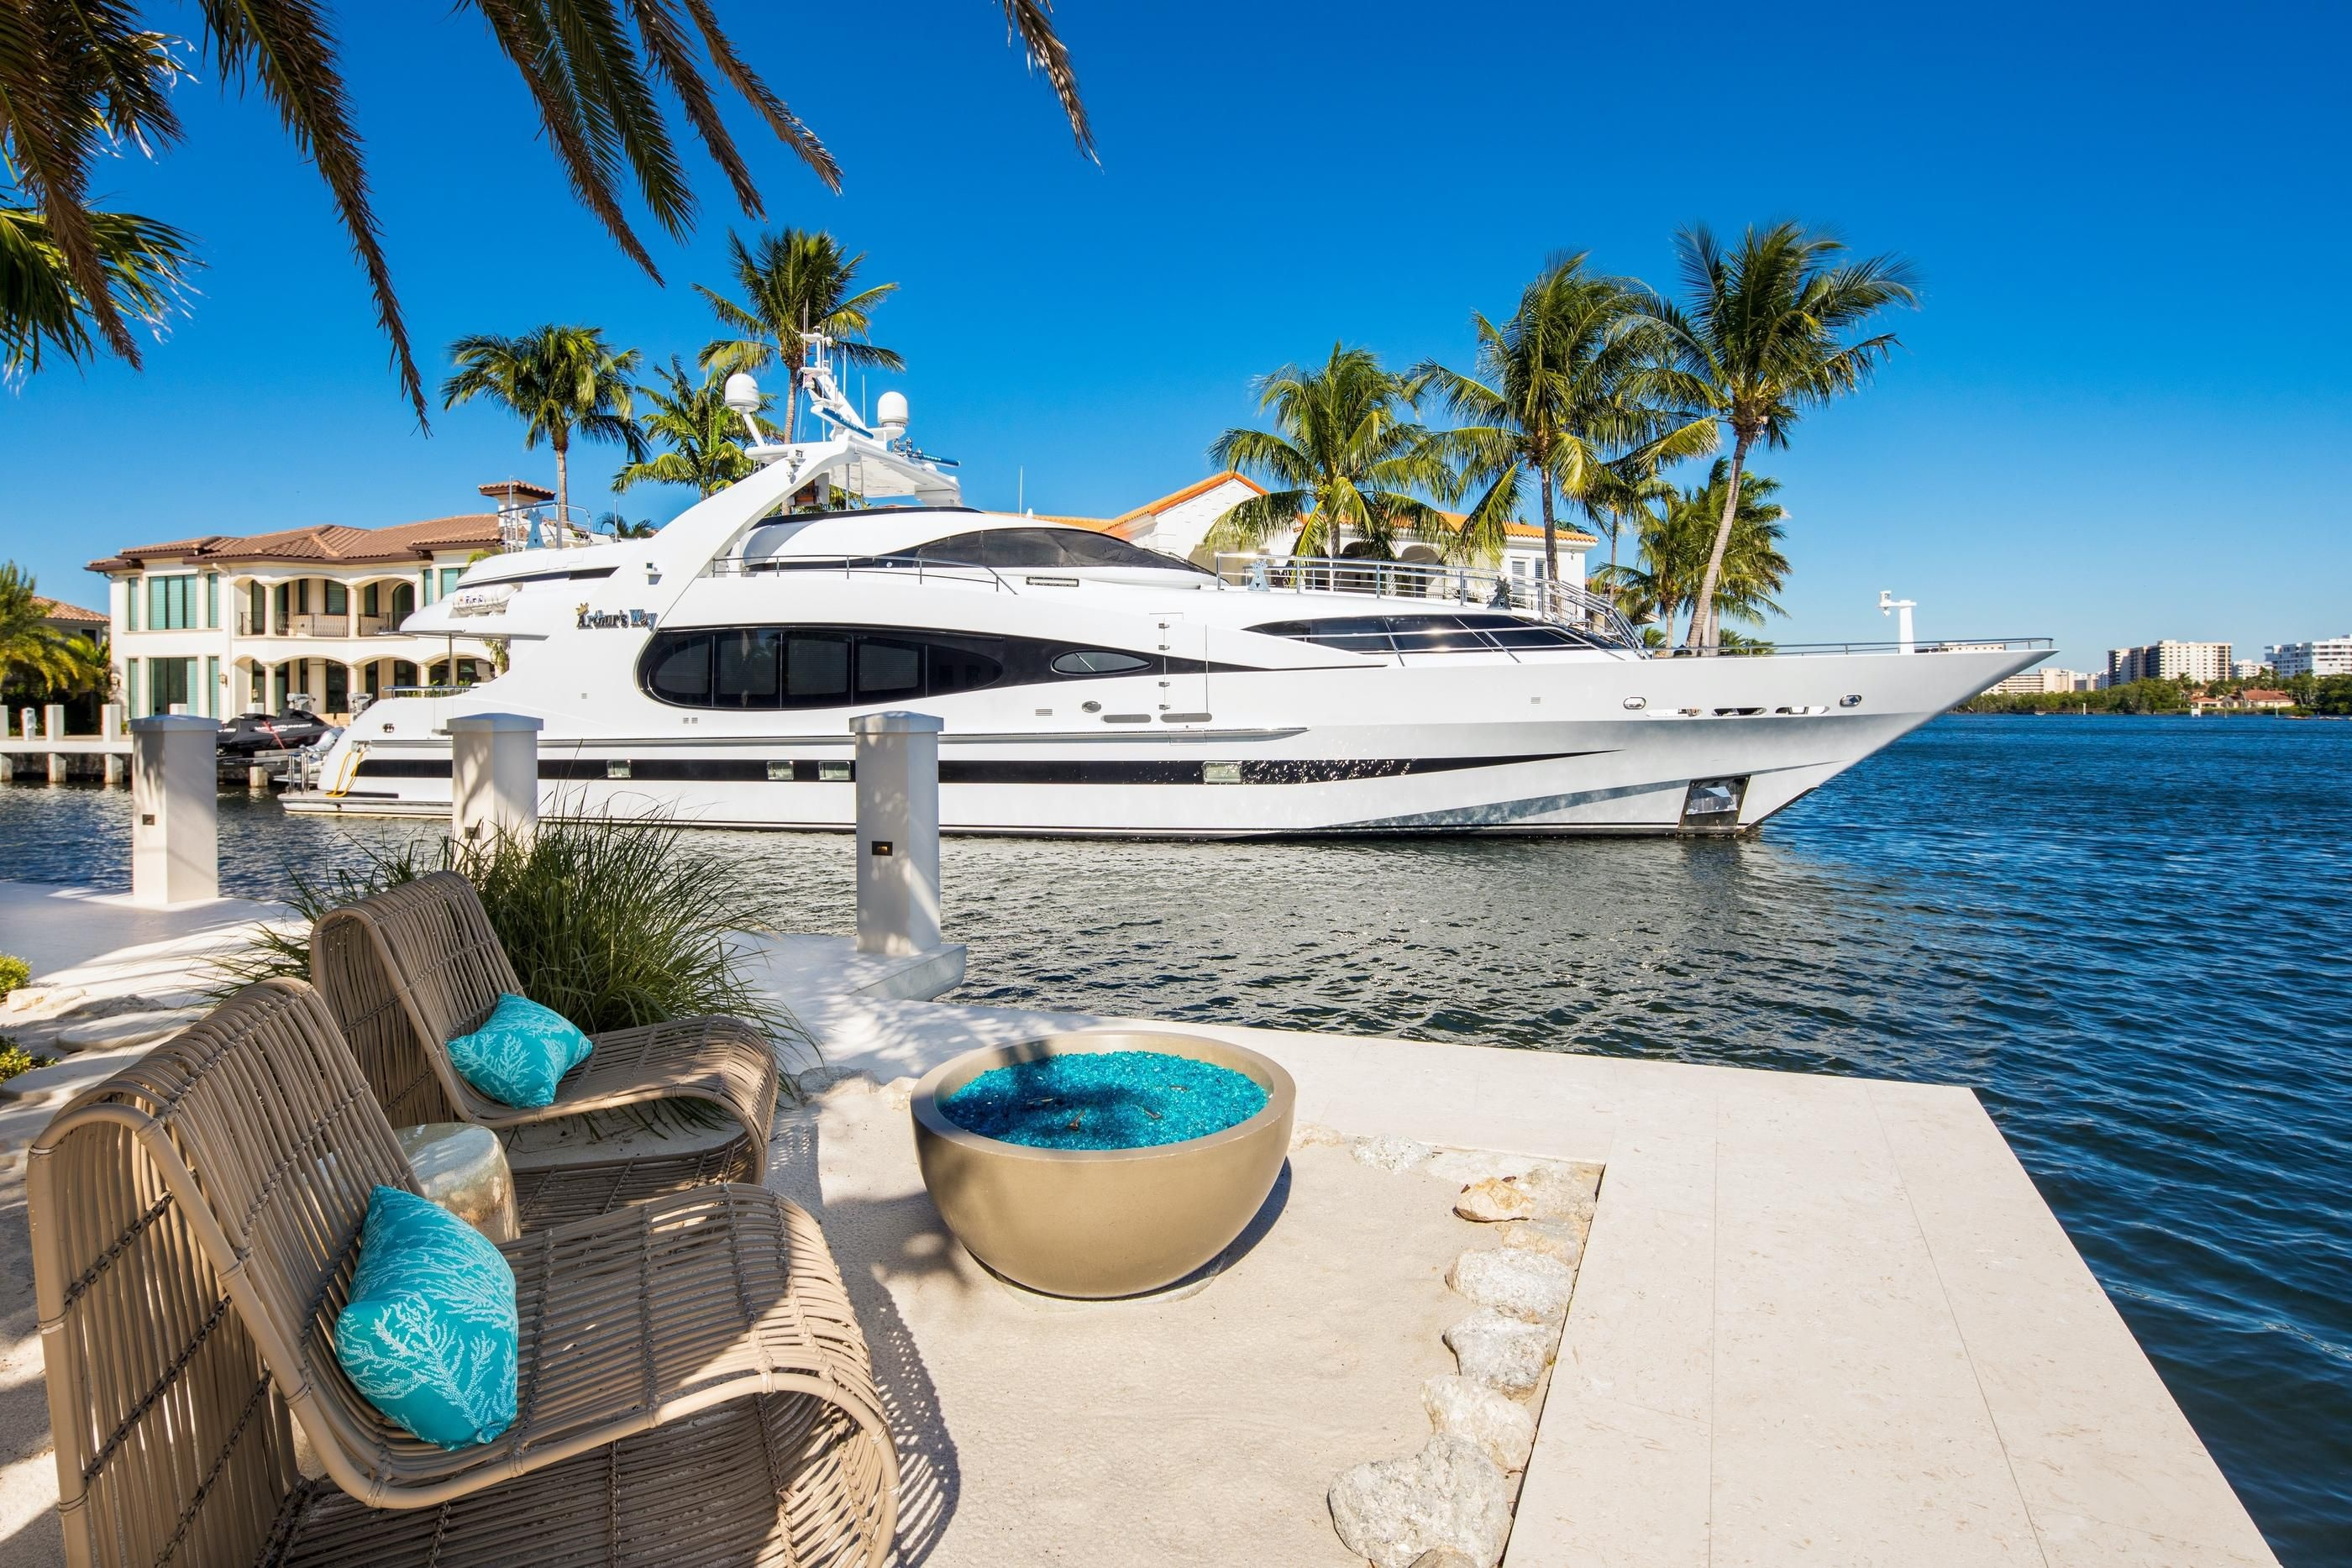 Jupiter Palm Beach Luxury Waterfront Homes For Sale With Docks